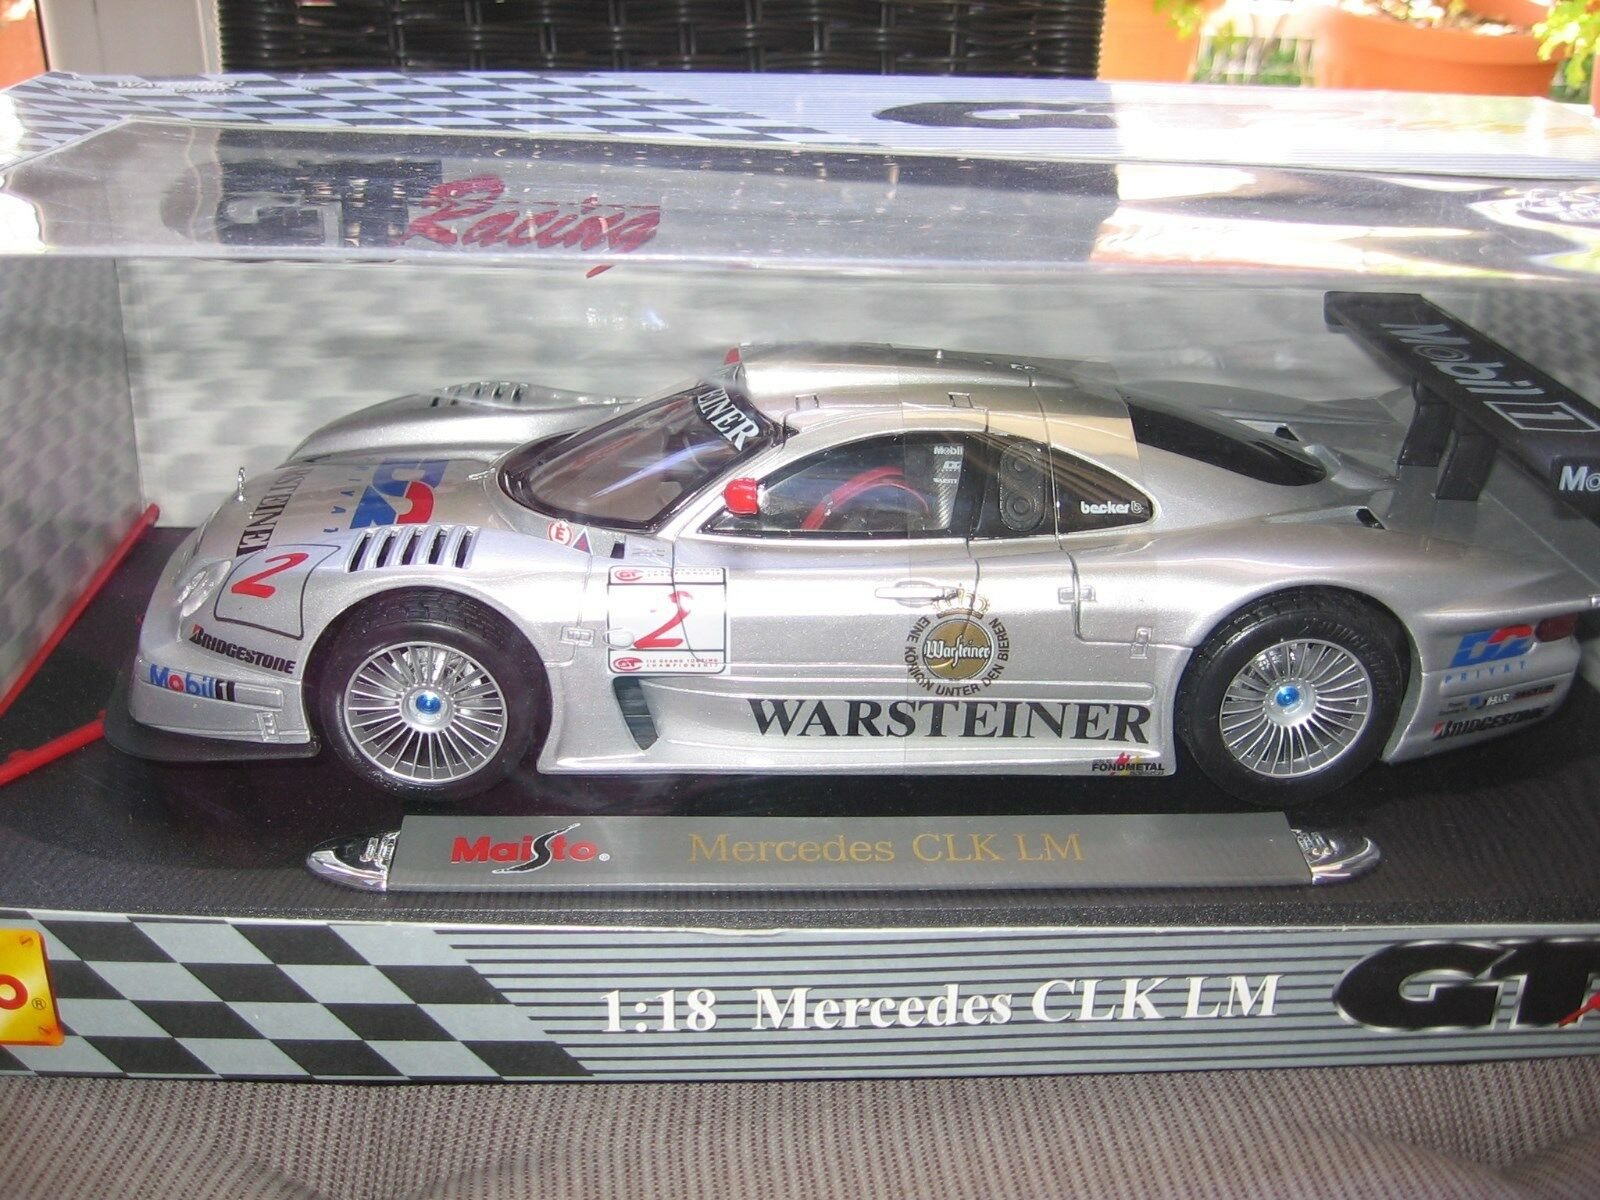 MERCEDES-BENZ CLK LM Maisto 1 18 GT-RACING EDITION NUOVO MINT